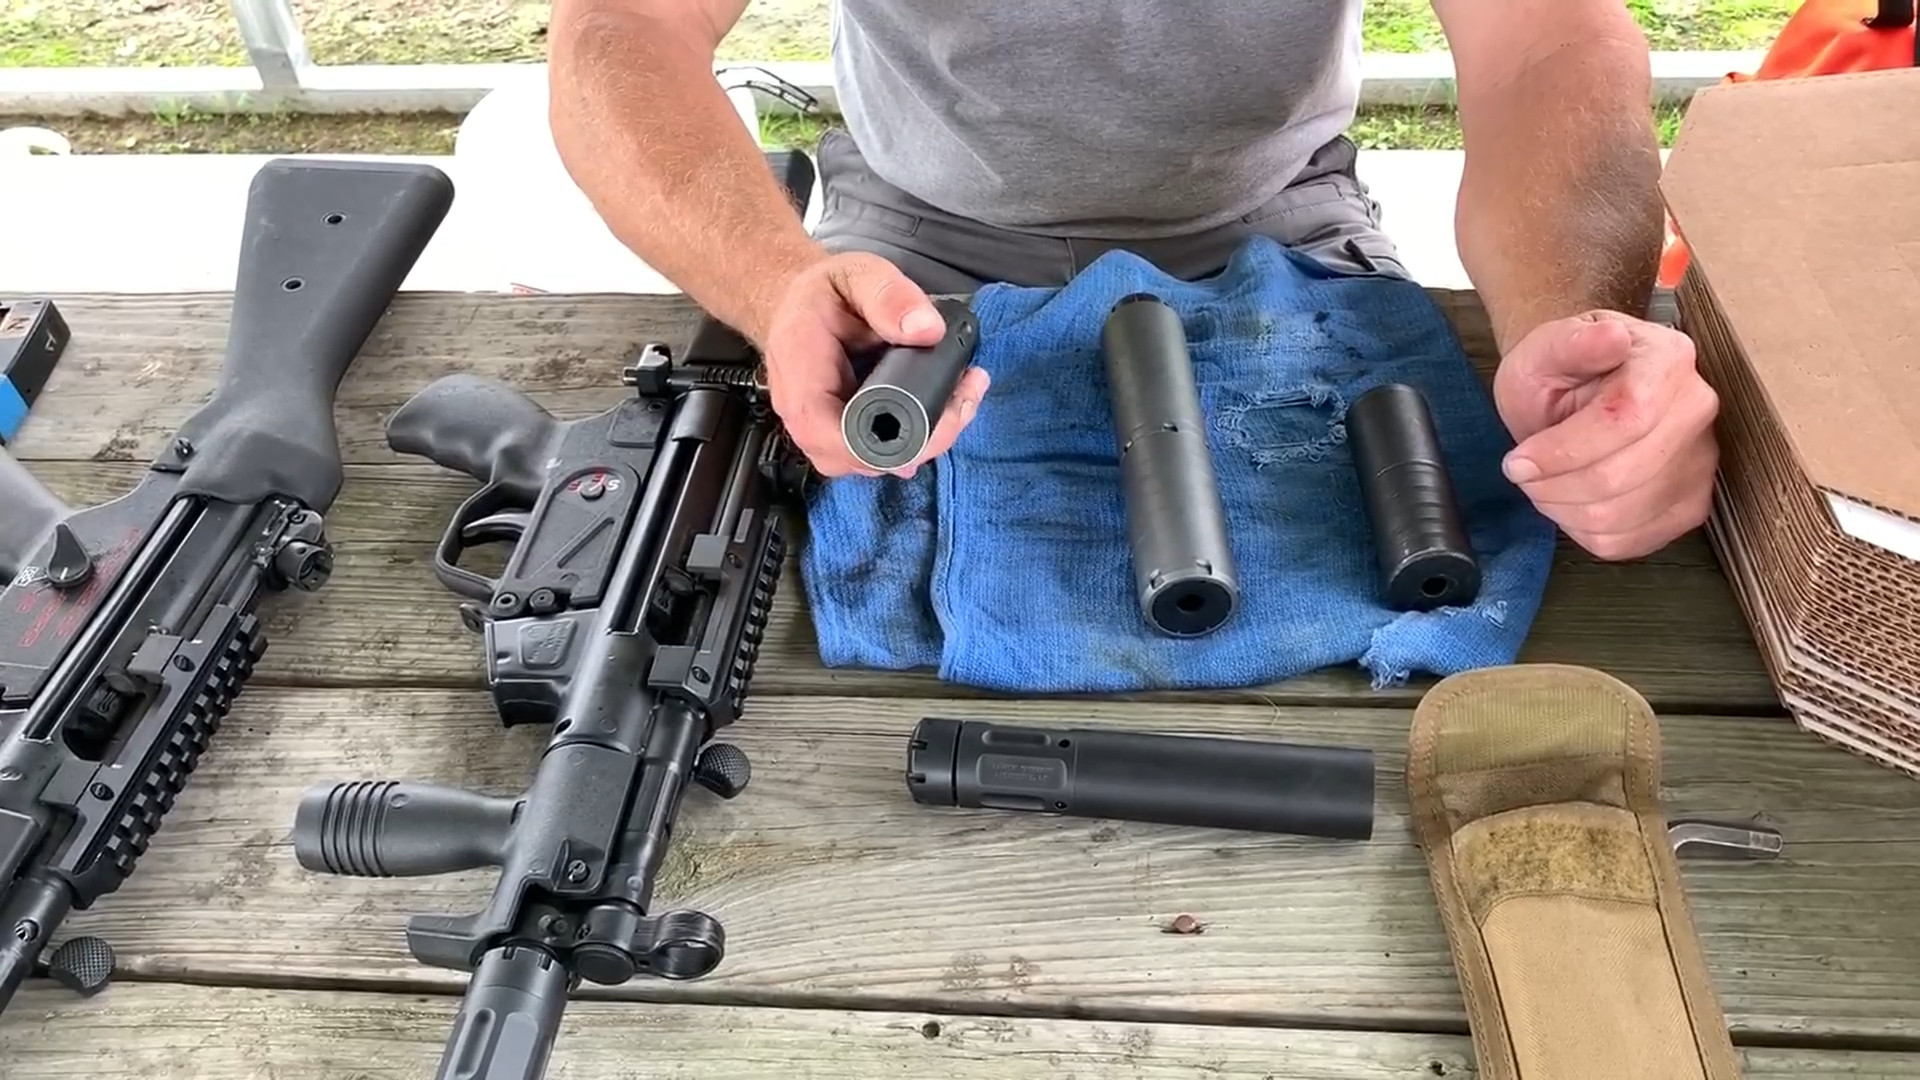 20-year SWAT w/11-years MP5 experience